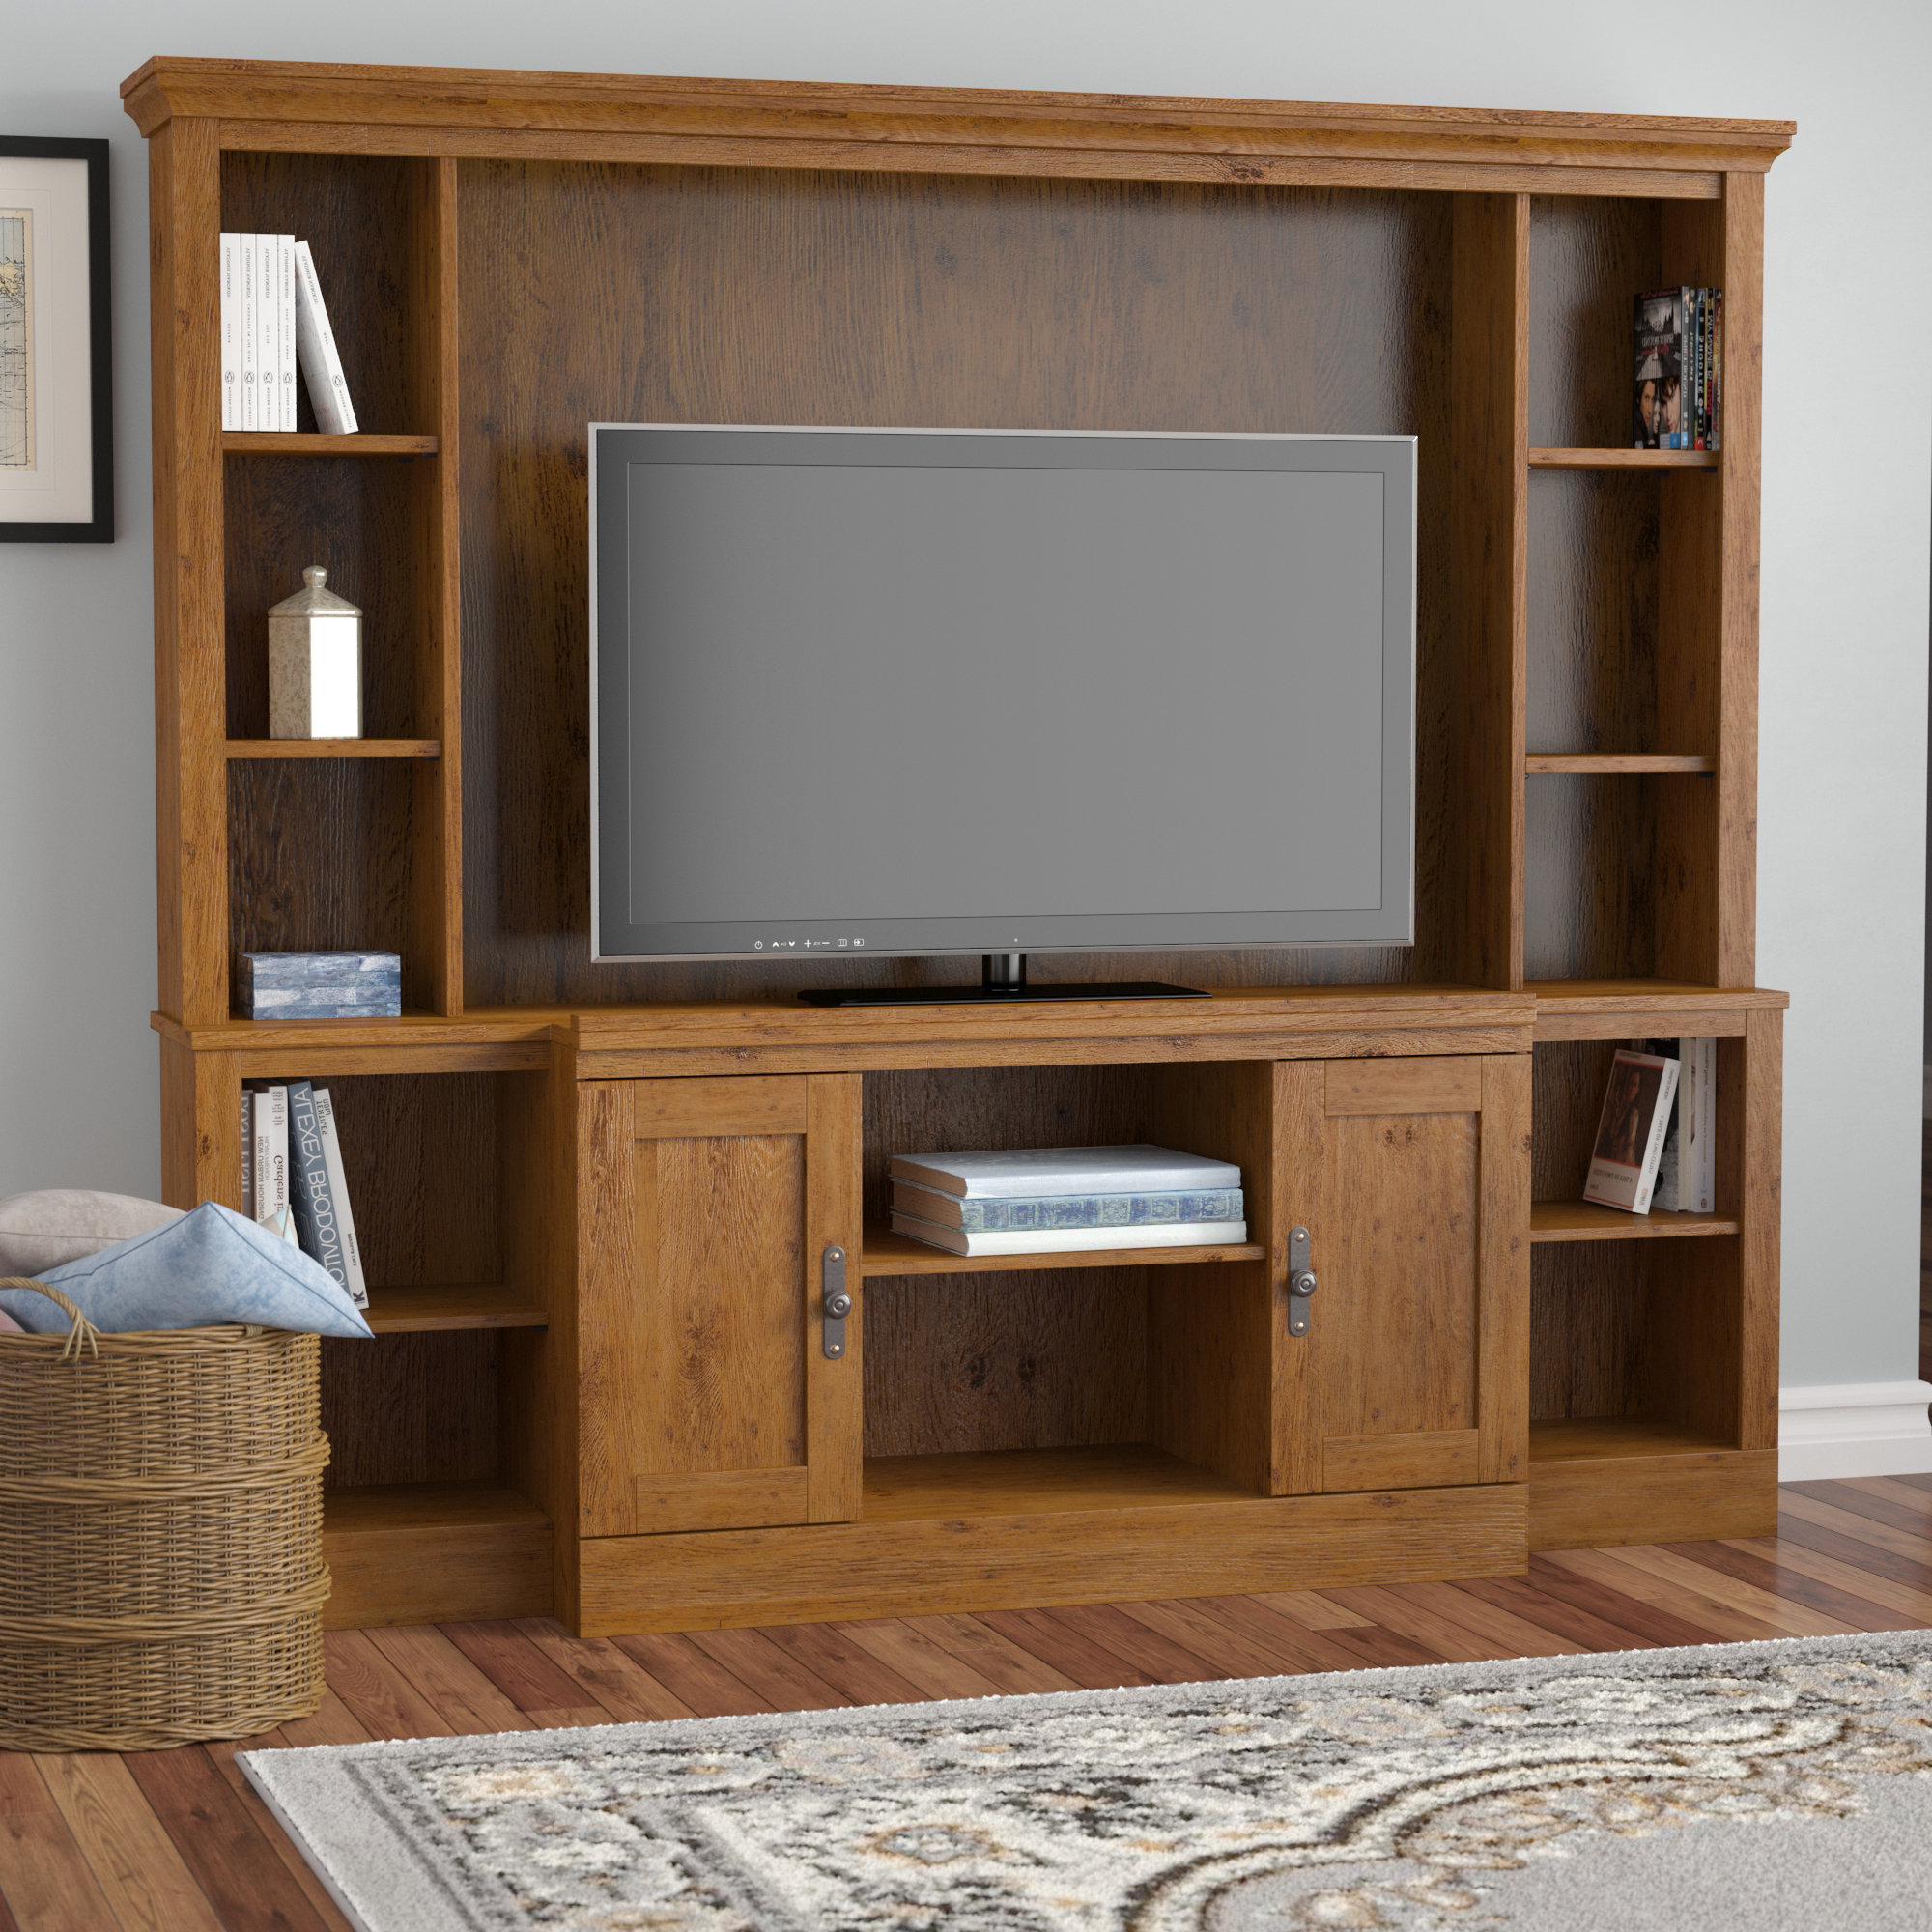 Wood Tv Entertainment Stands For Recent Entertainment Centers You'll Love (View 13 of 20)